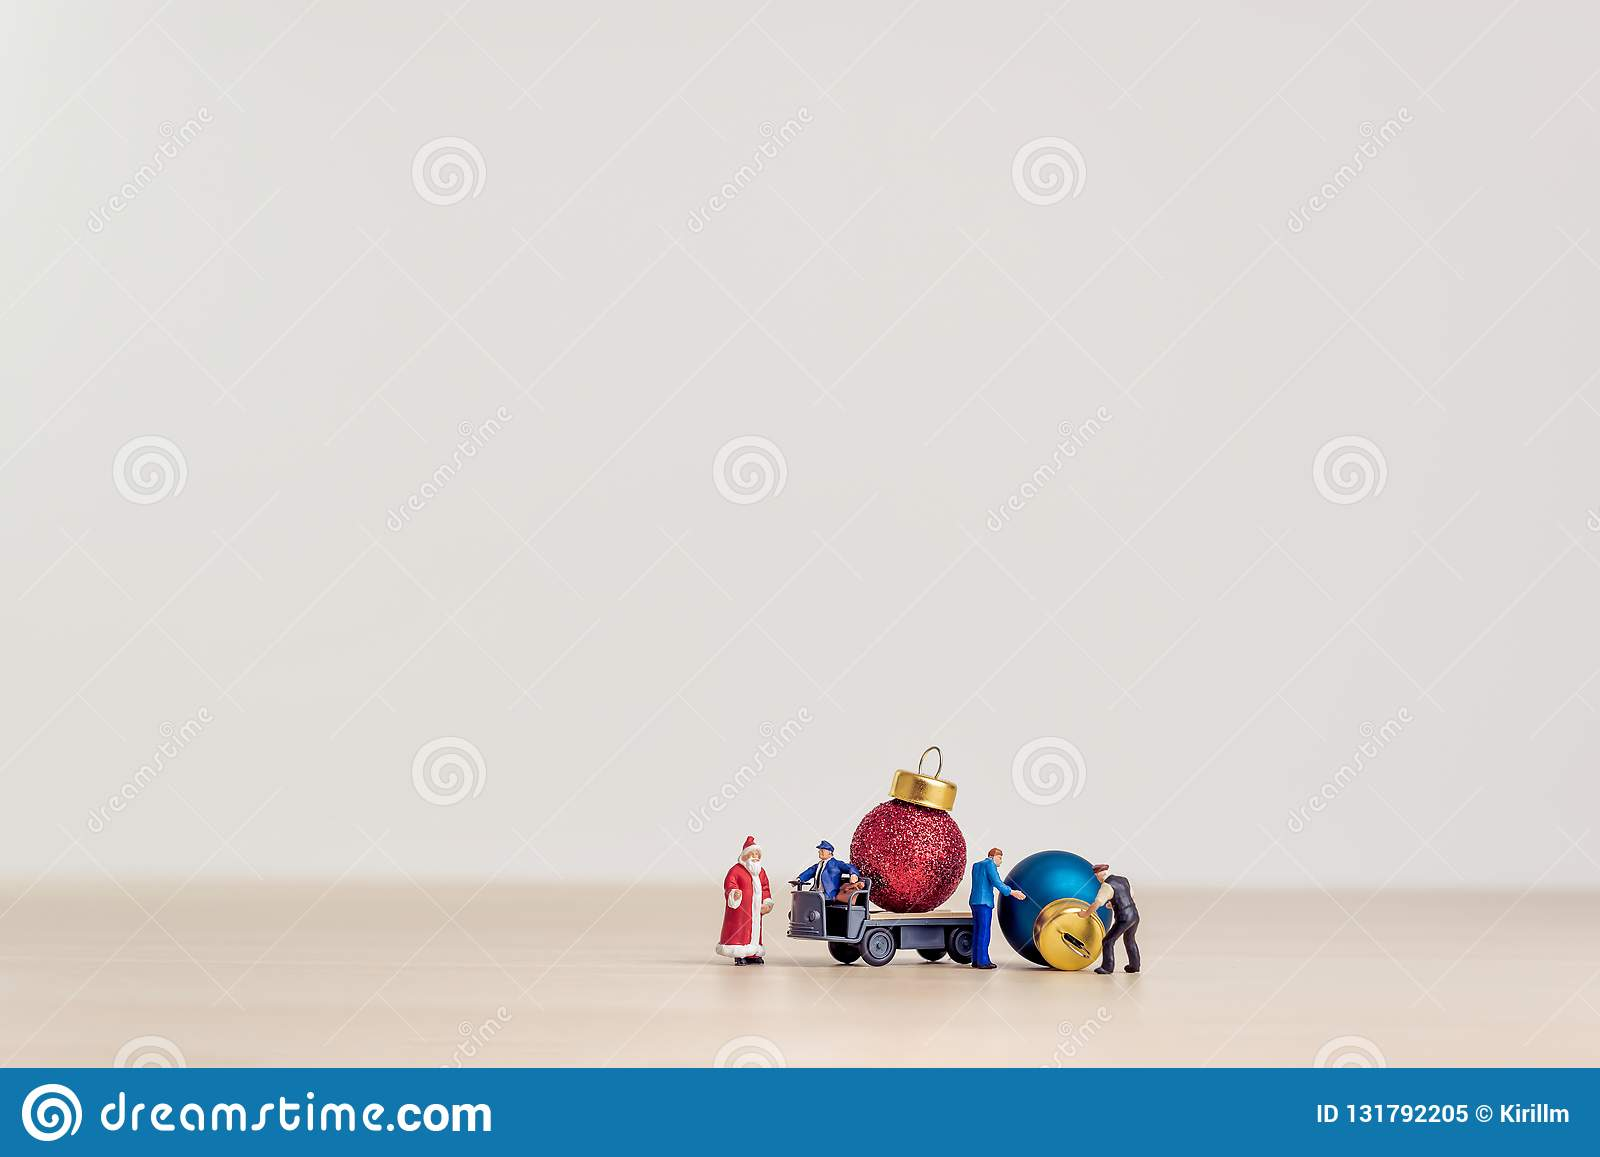 Toy truck carrying Christmas decorative balls. Christmas concept with copy space